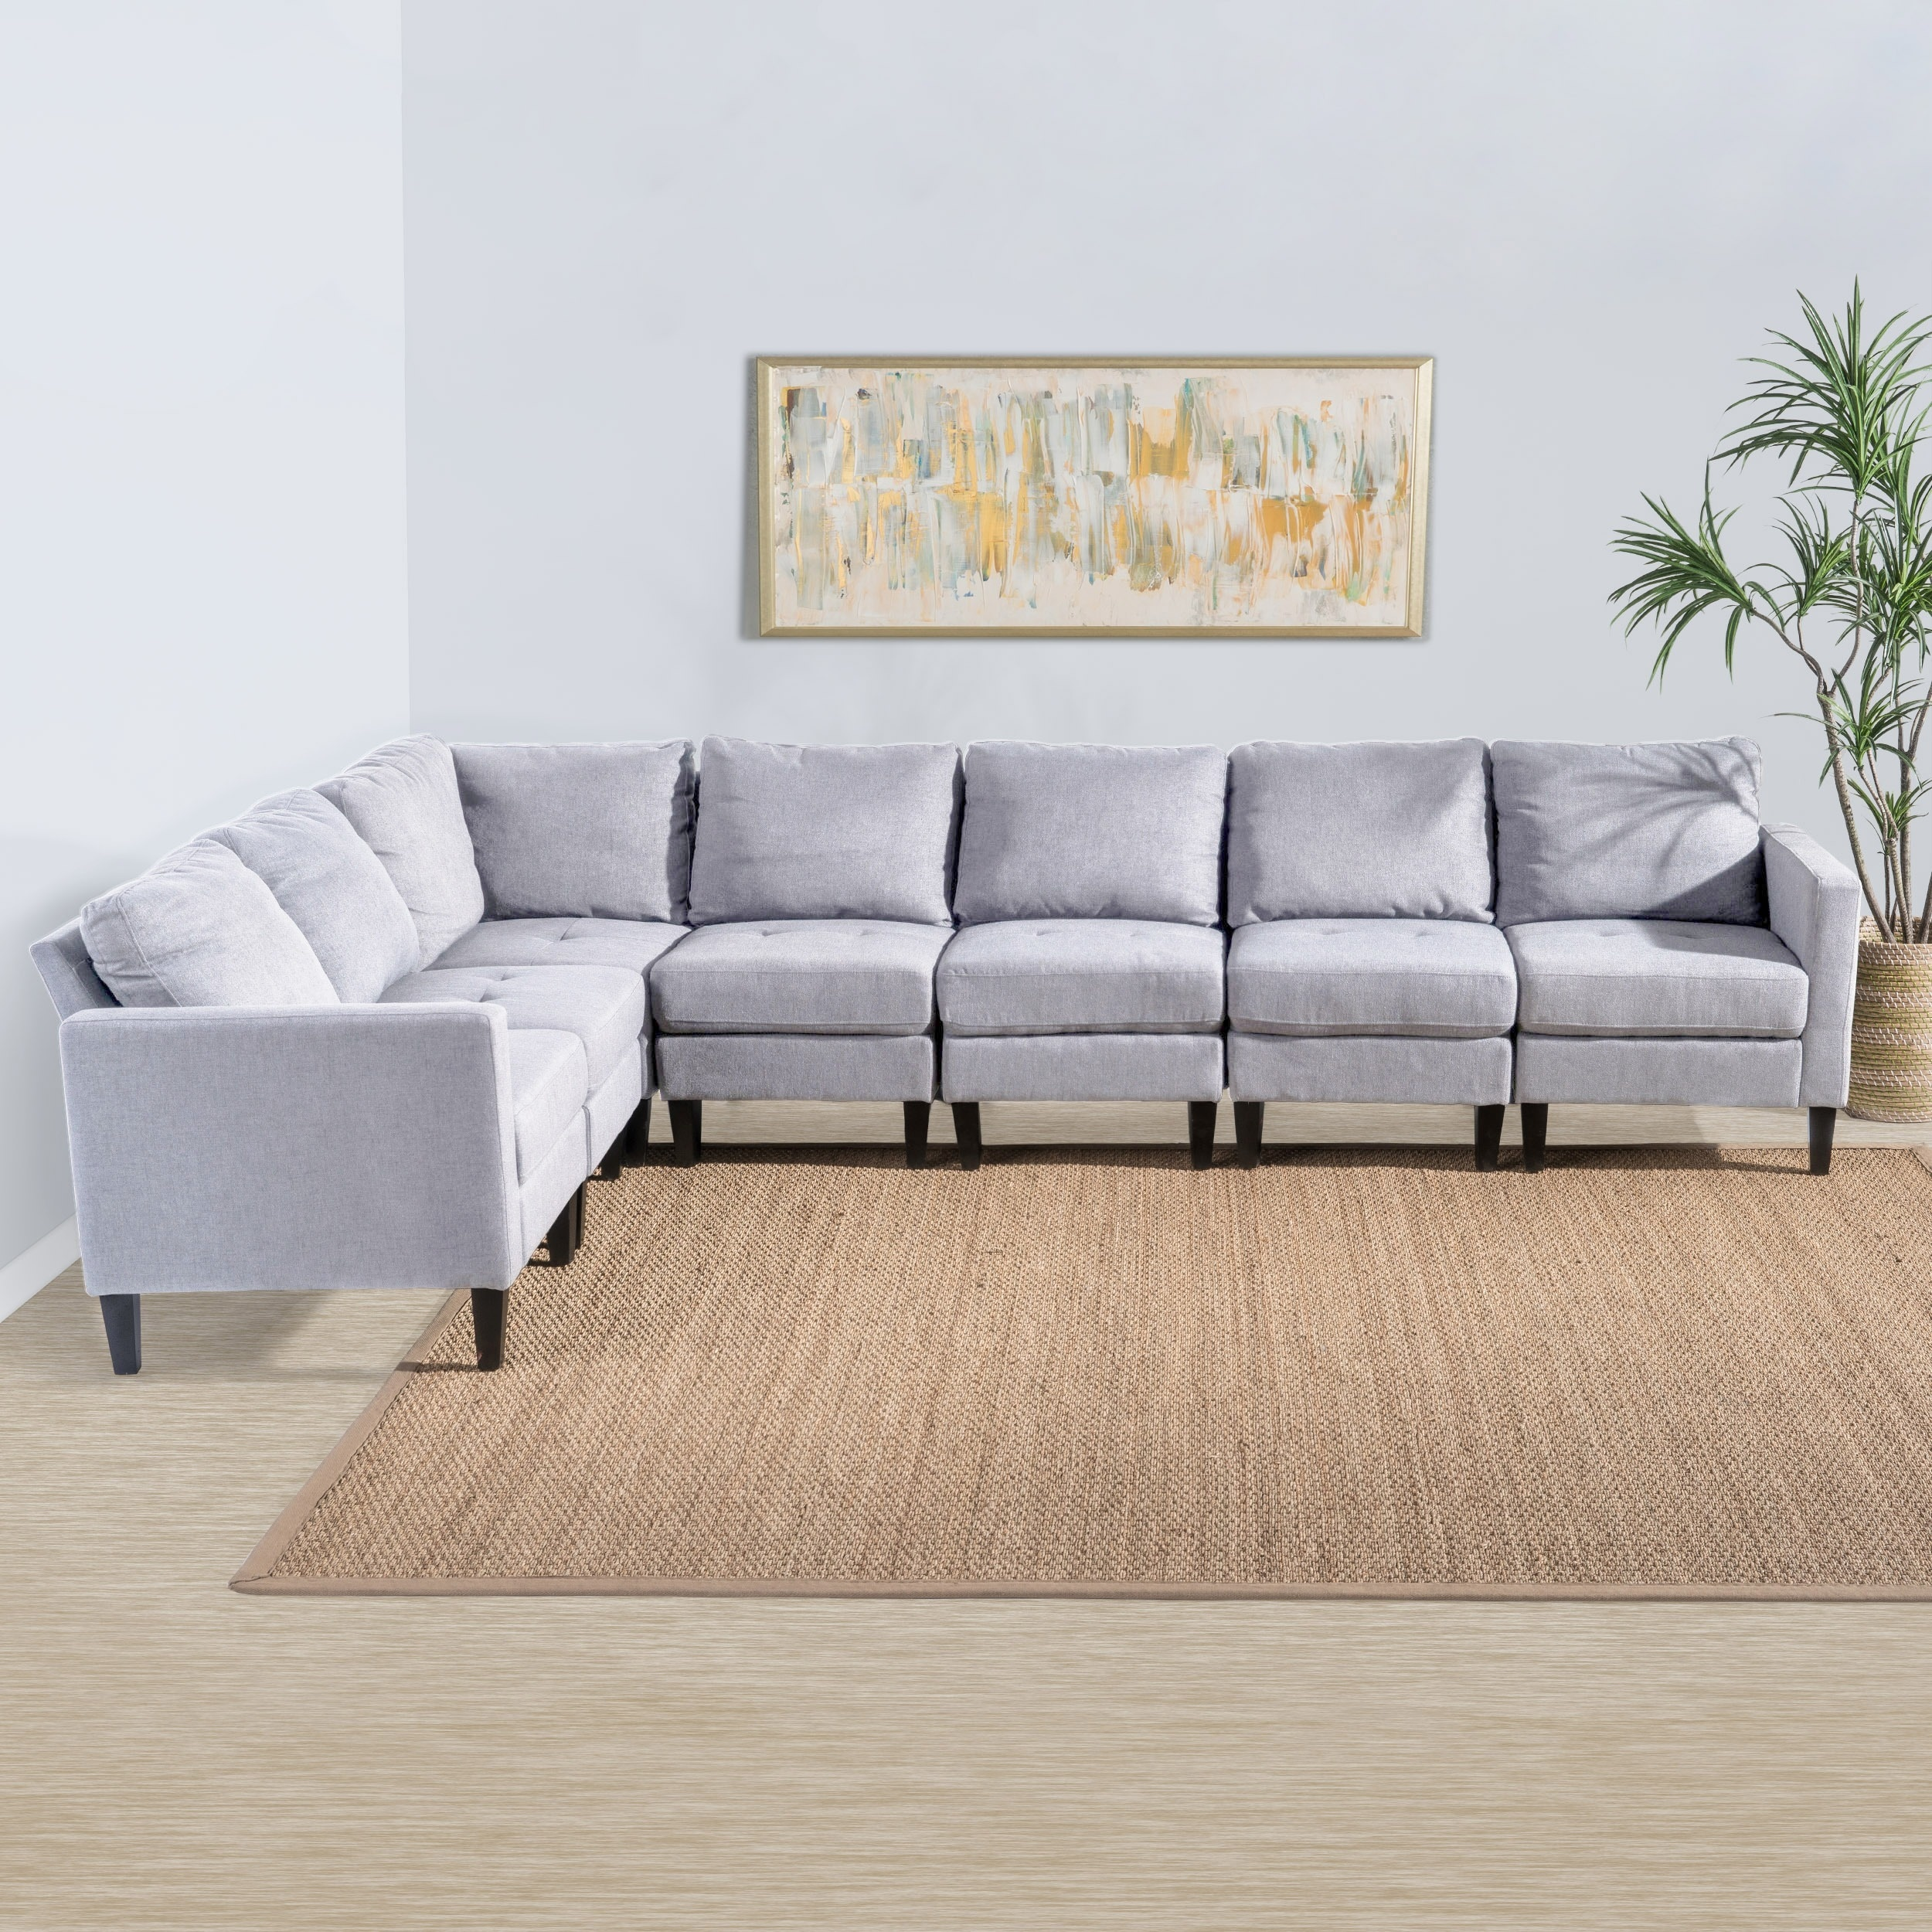 Sectional Furniture Pictures Regal 3 Piece Modular Sectional Hom